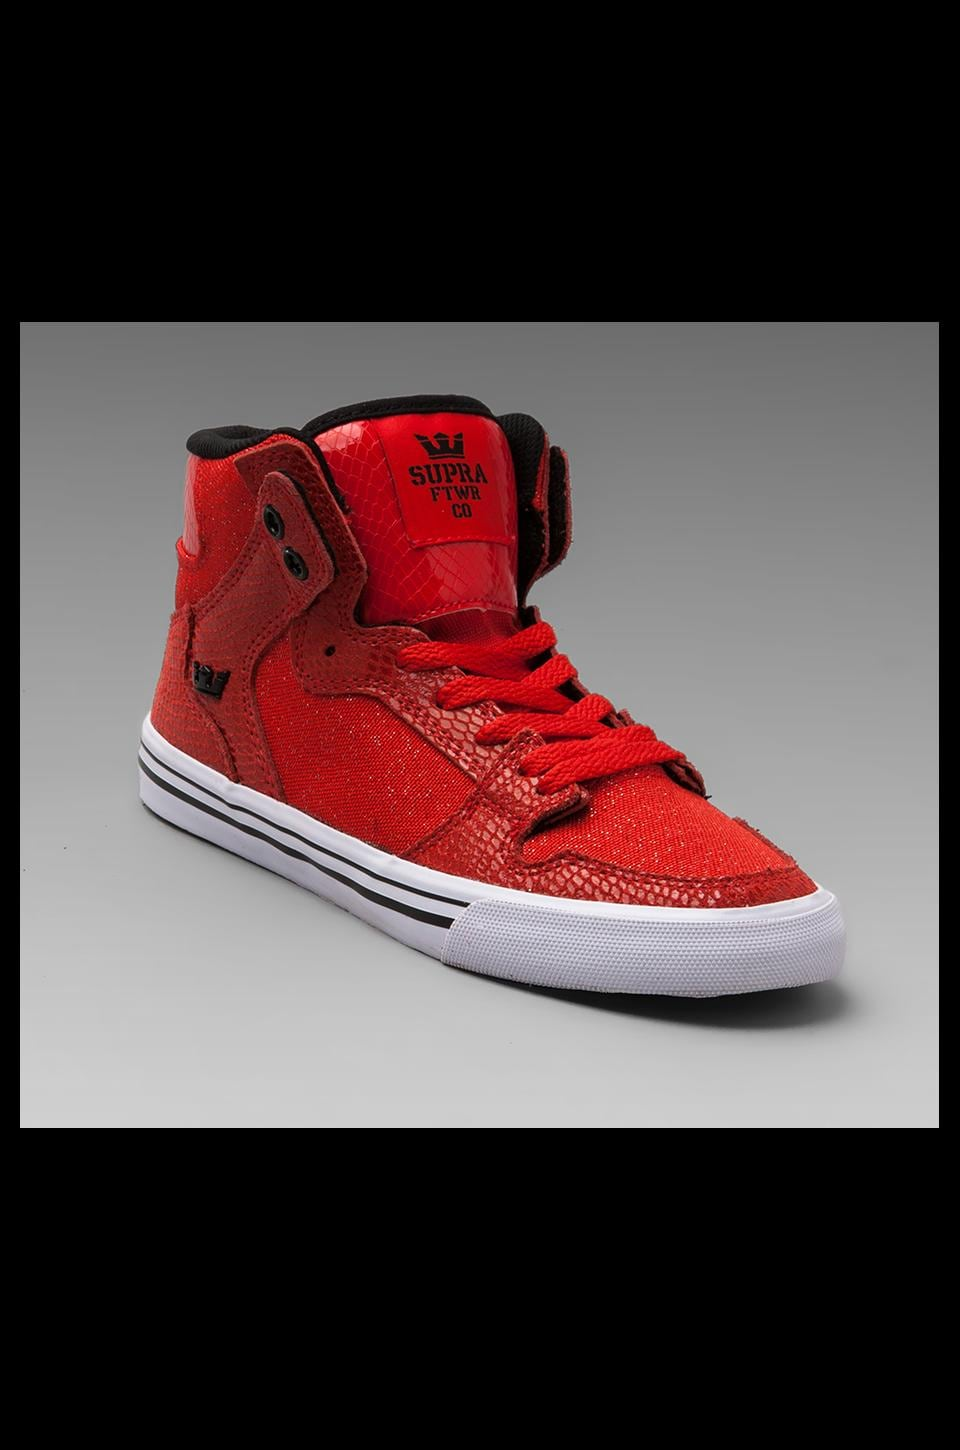 Supra Vaider Sneaker in Red Snake